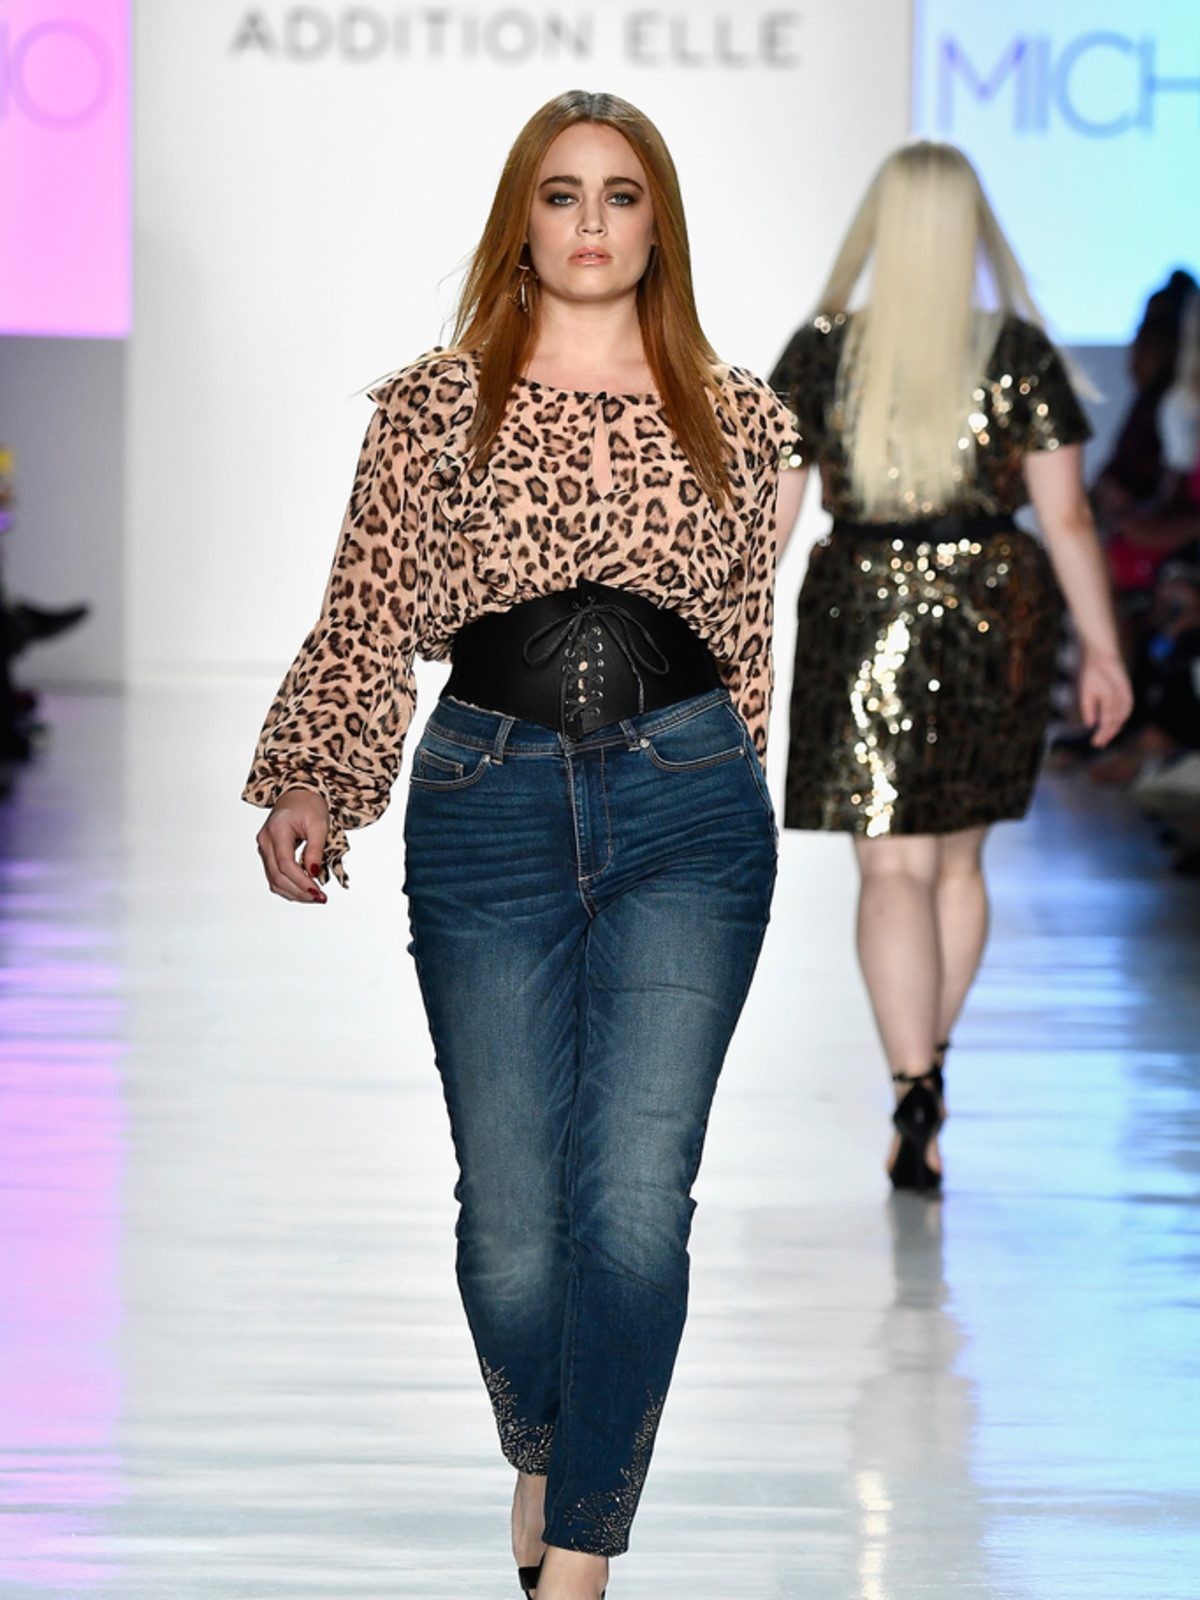 Ashley Graham And Other Curvy Models Rule The Runway At Fashion Week Culturemap Houston